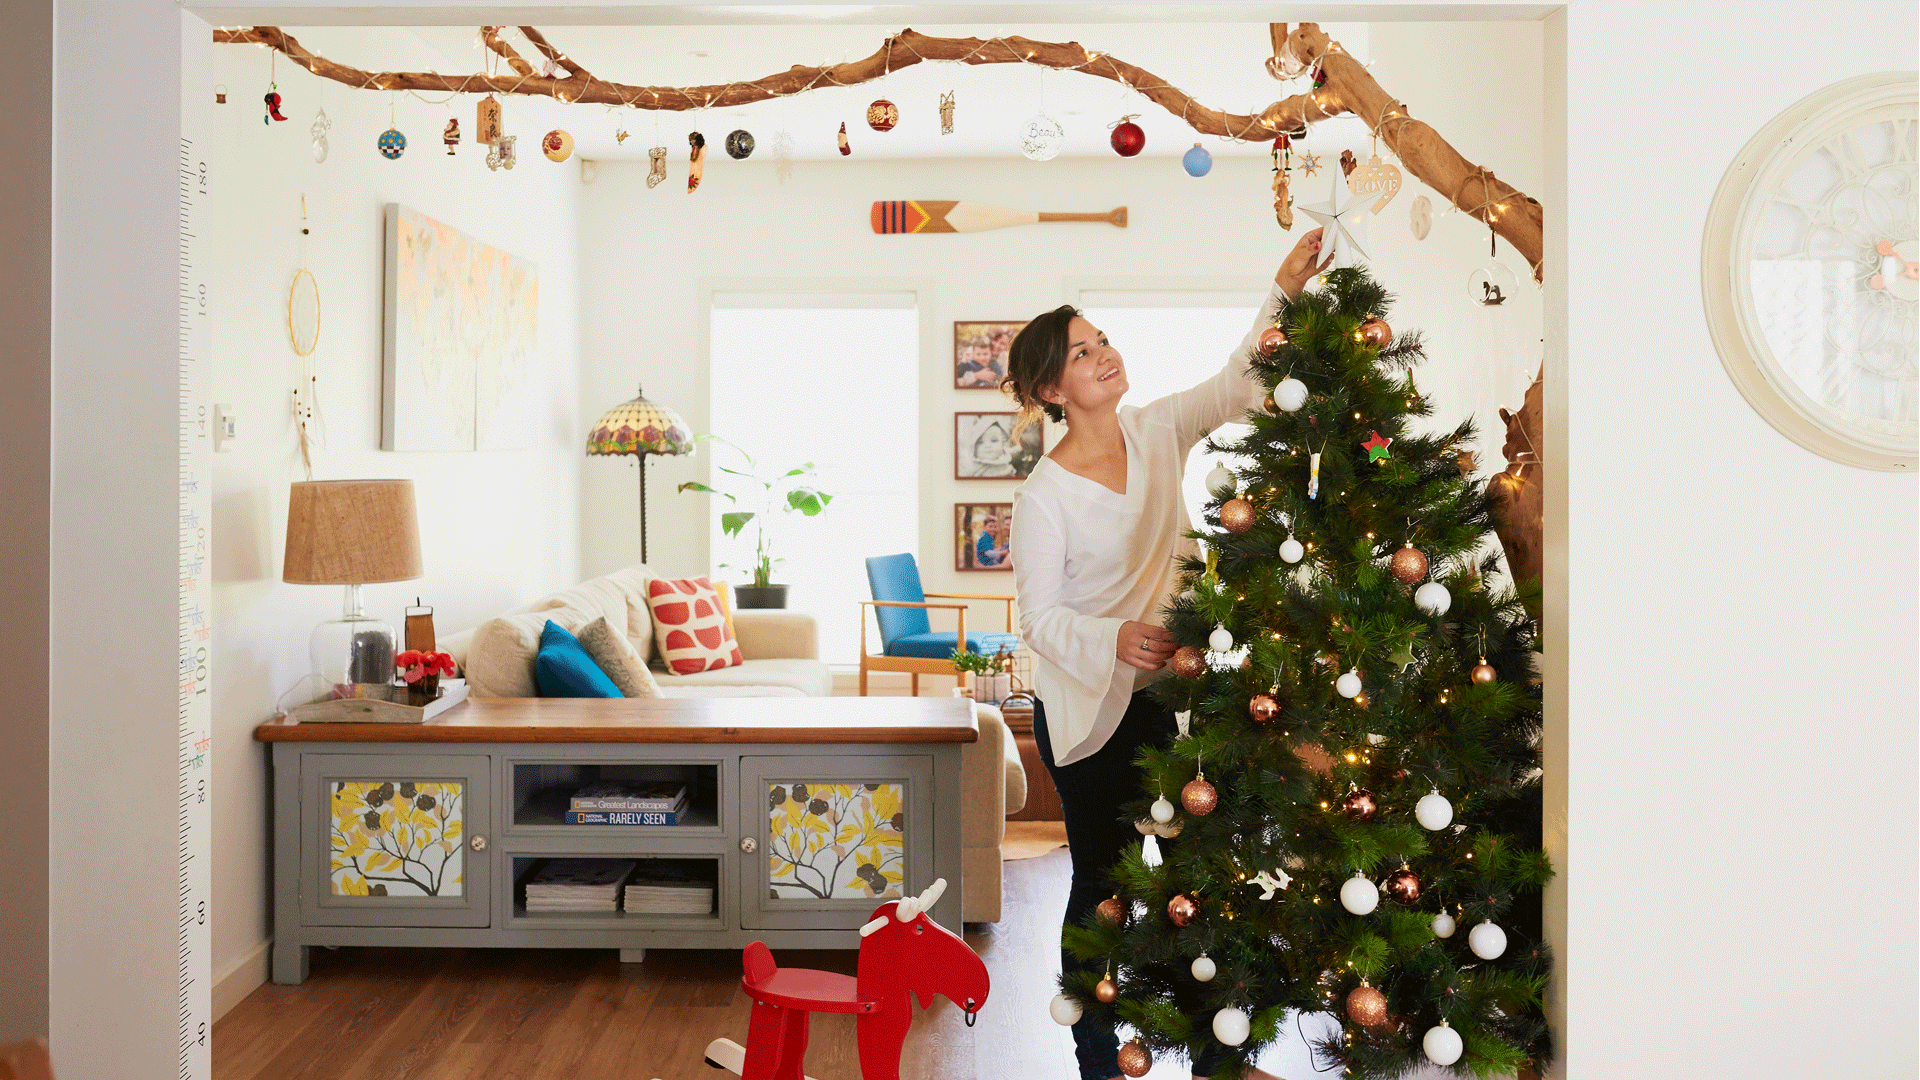 5 Kid-Friendly Christmas Decorating Ideas